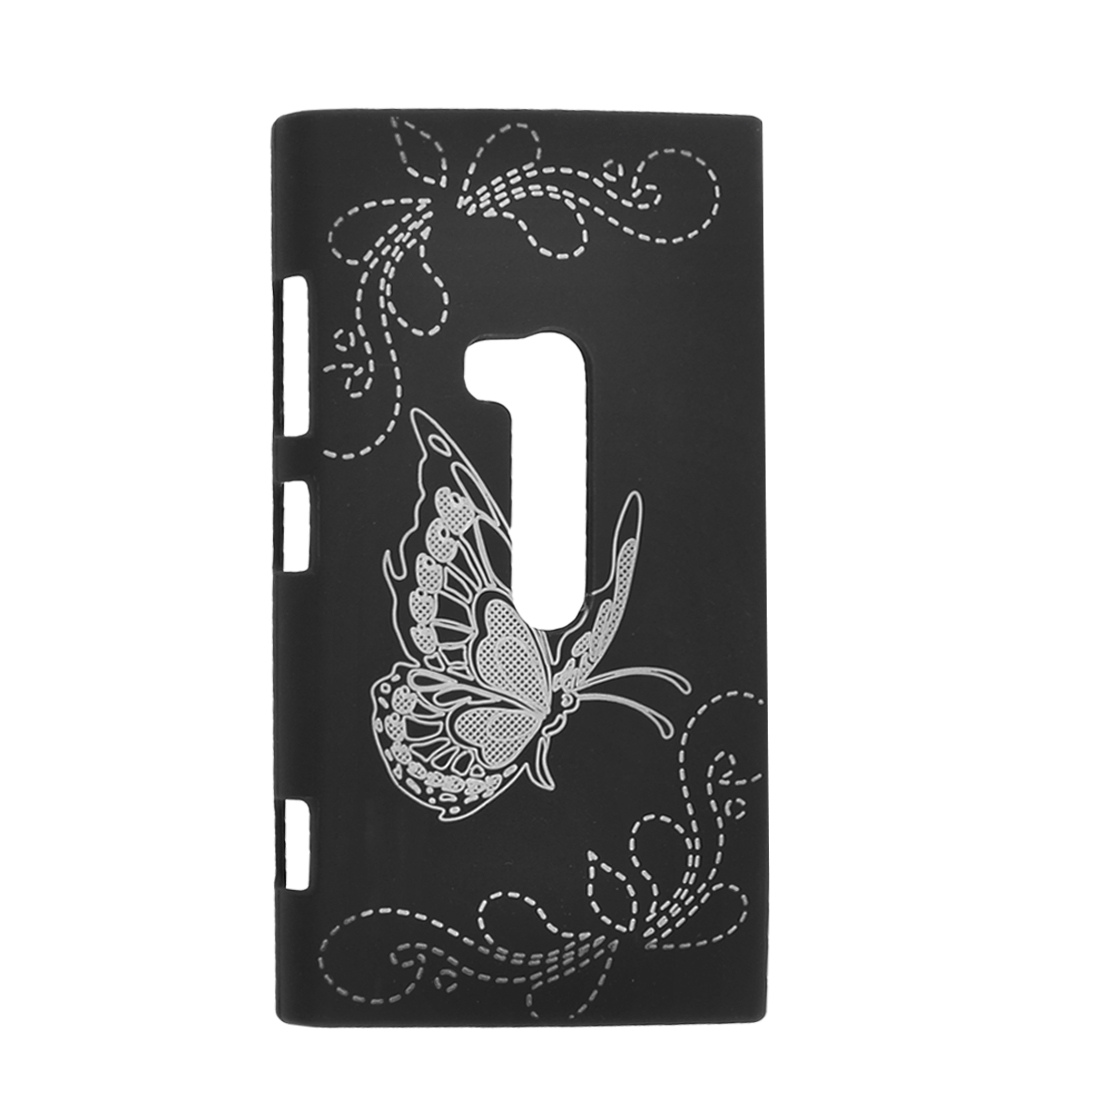 Silver Tone Floral Pattern Black Back Cover Case for Nokia N920